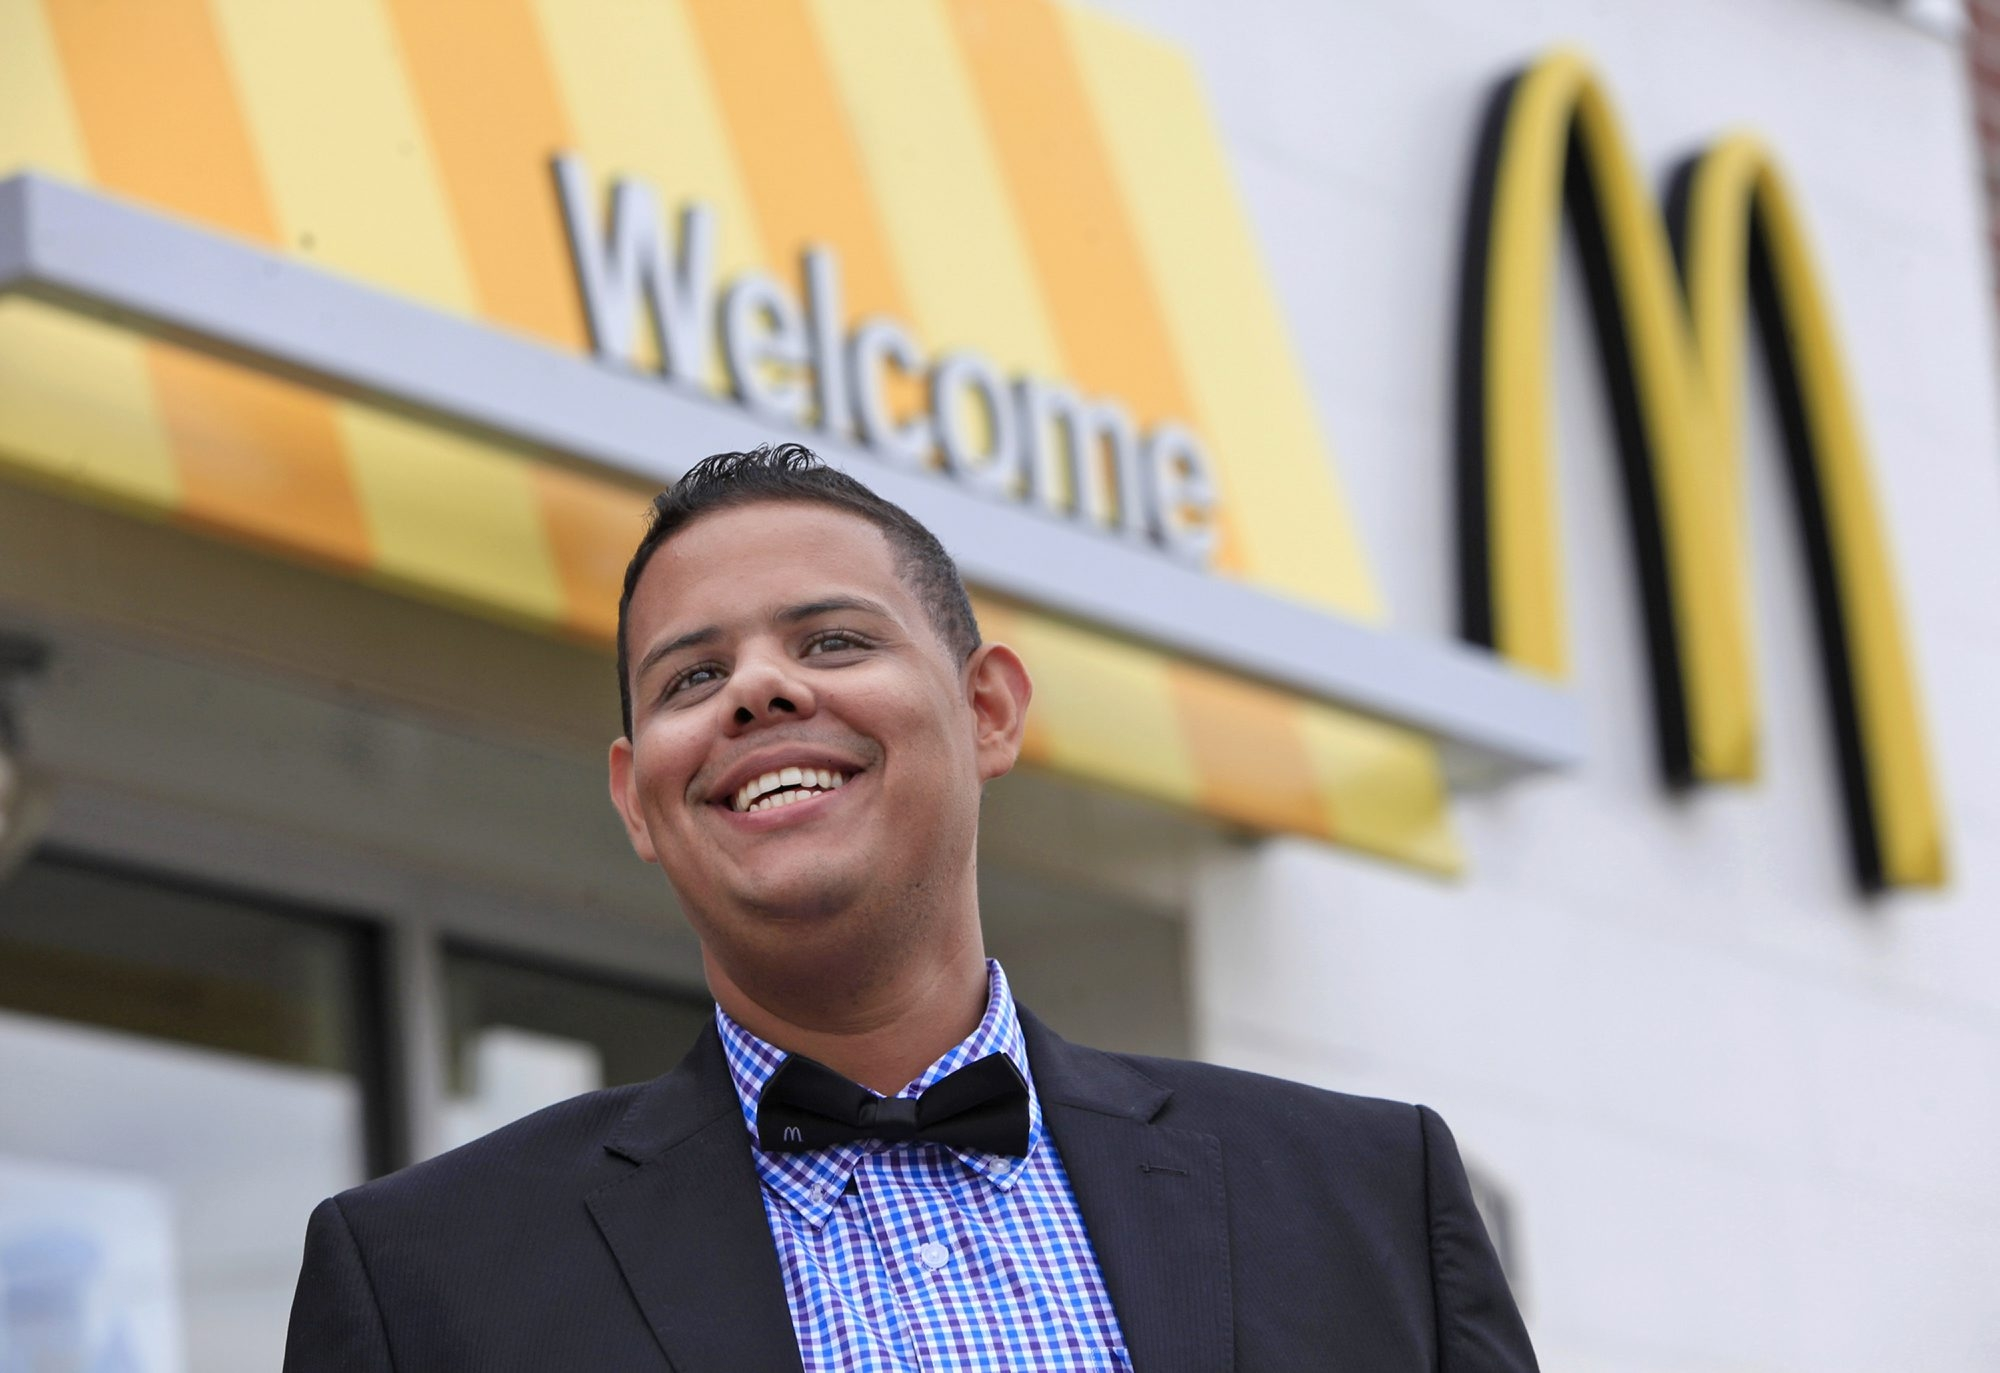 McDonald's area manager Jose Munoz of Paterson, N.J., taught himself English by watching TV, impressing his bosses.